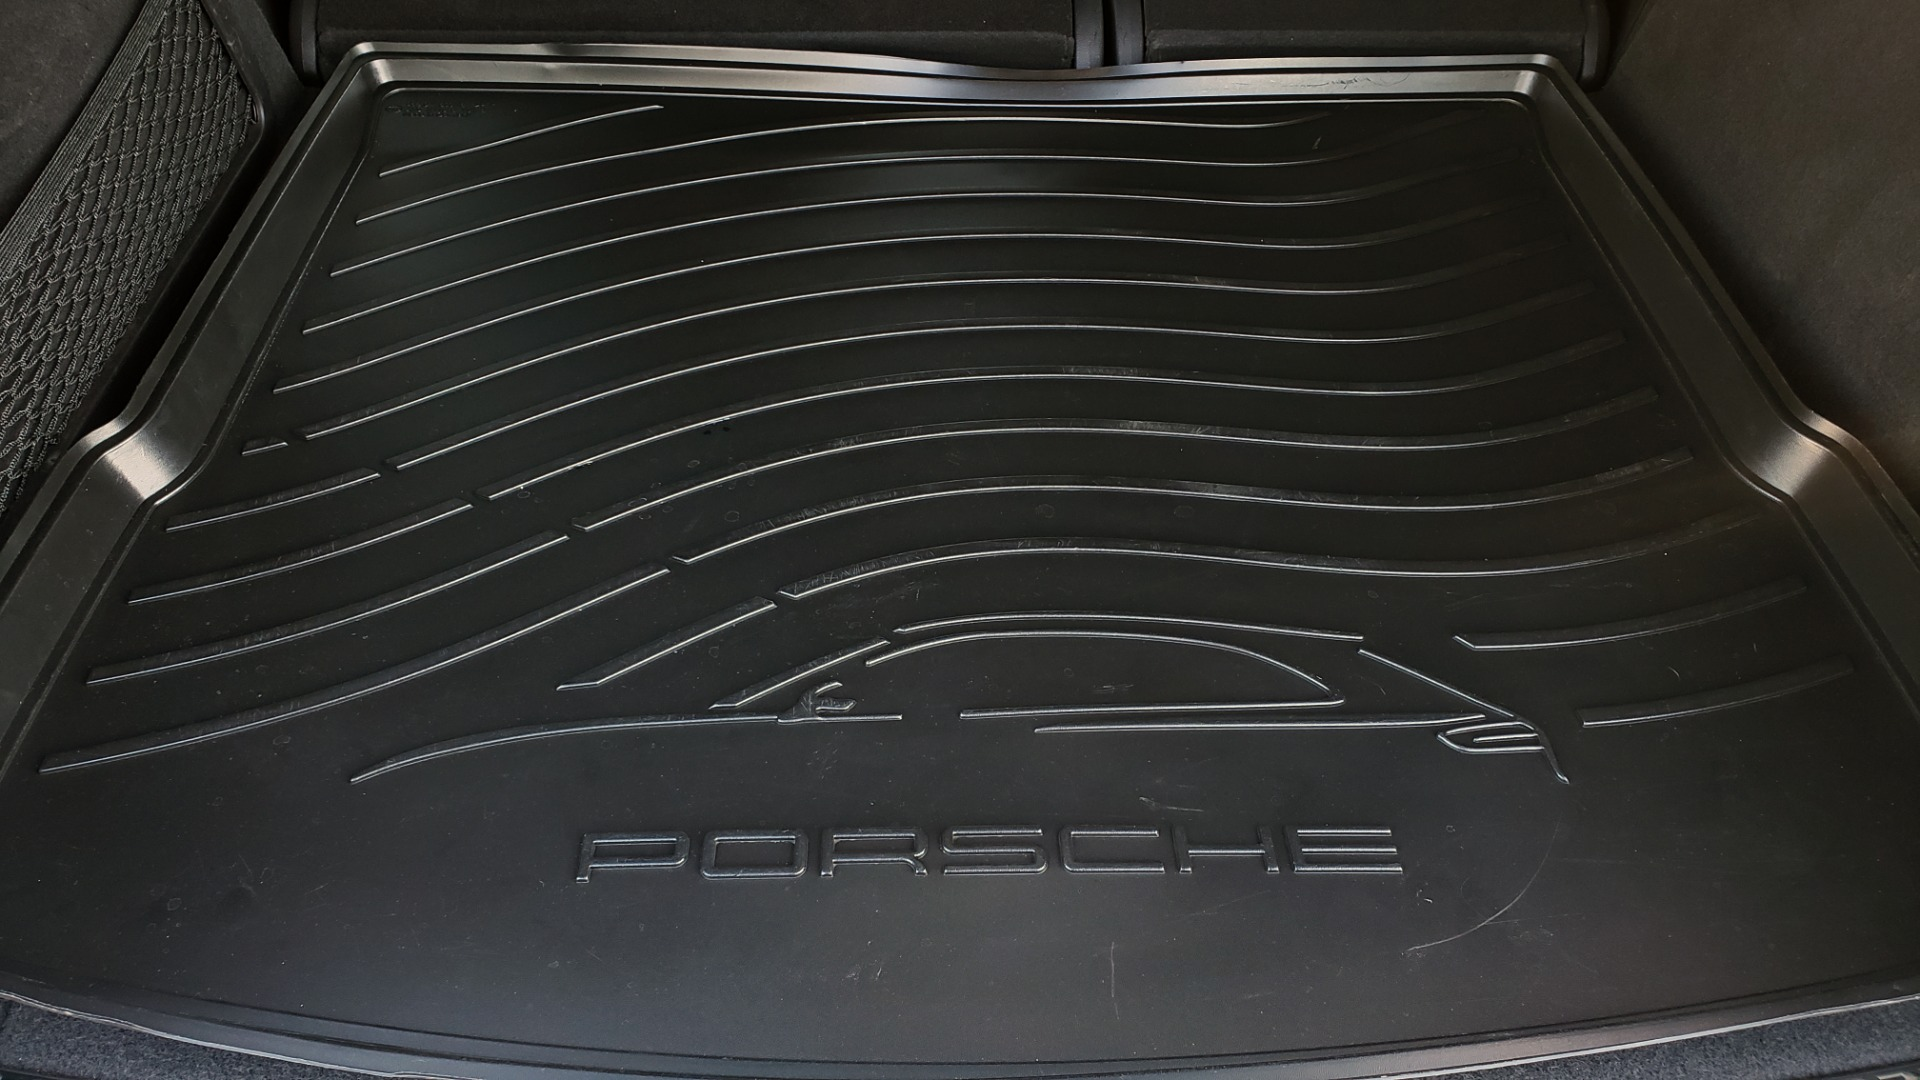 Used 2015 Porsche CAYENNE TURBO V8 / PREMIUM / NAV / SUNROOF / PARK ASSIST / LCA / REARVIEW for sale $47,995 at Formula Imports in Charlotte NC 28227 66